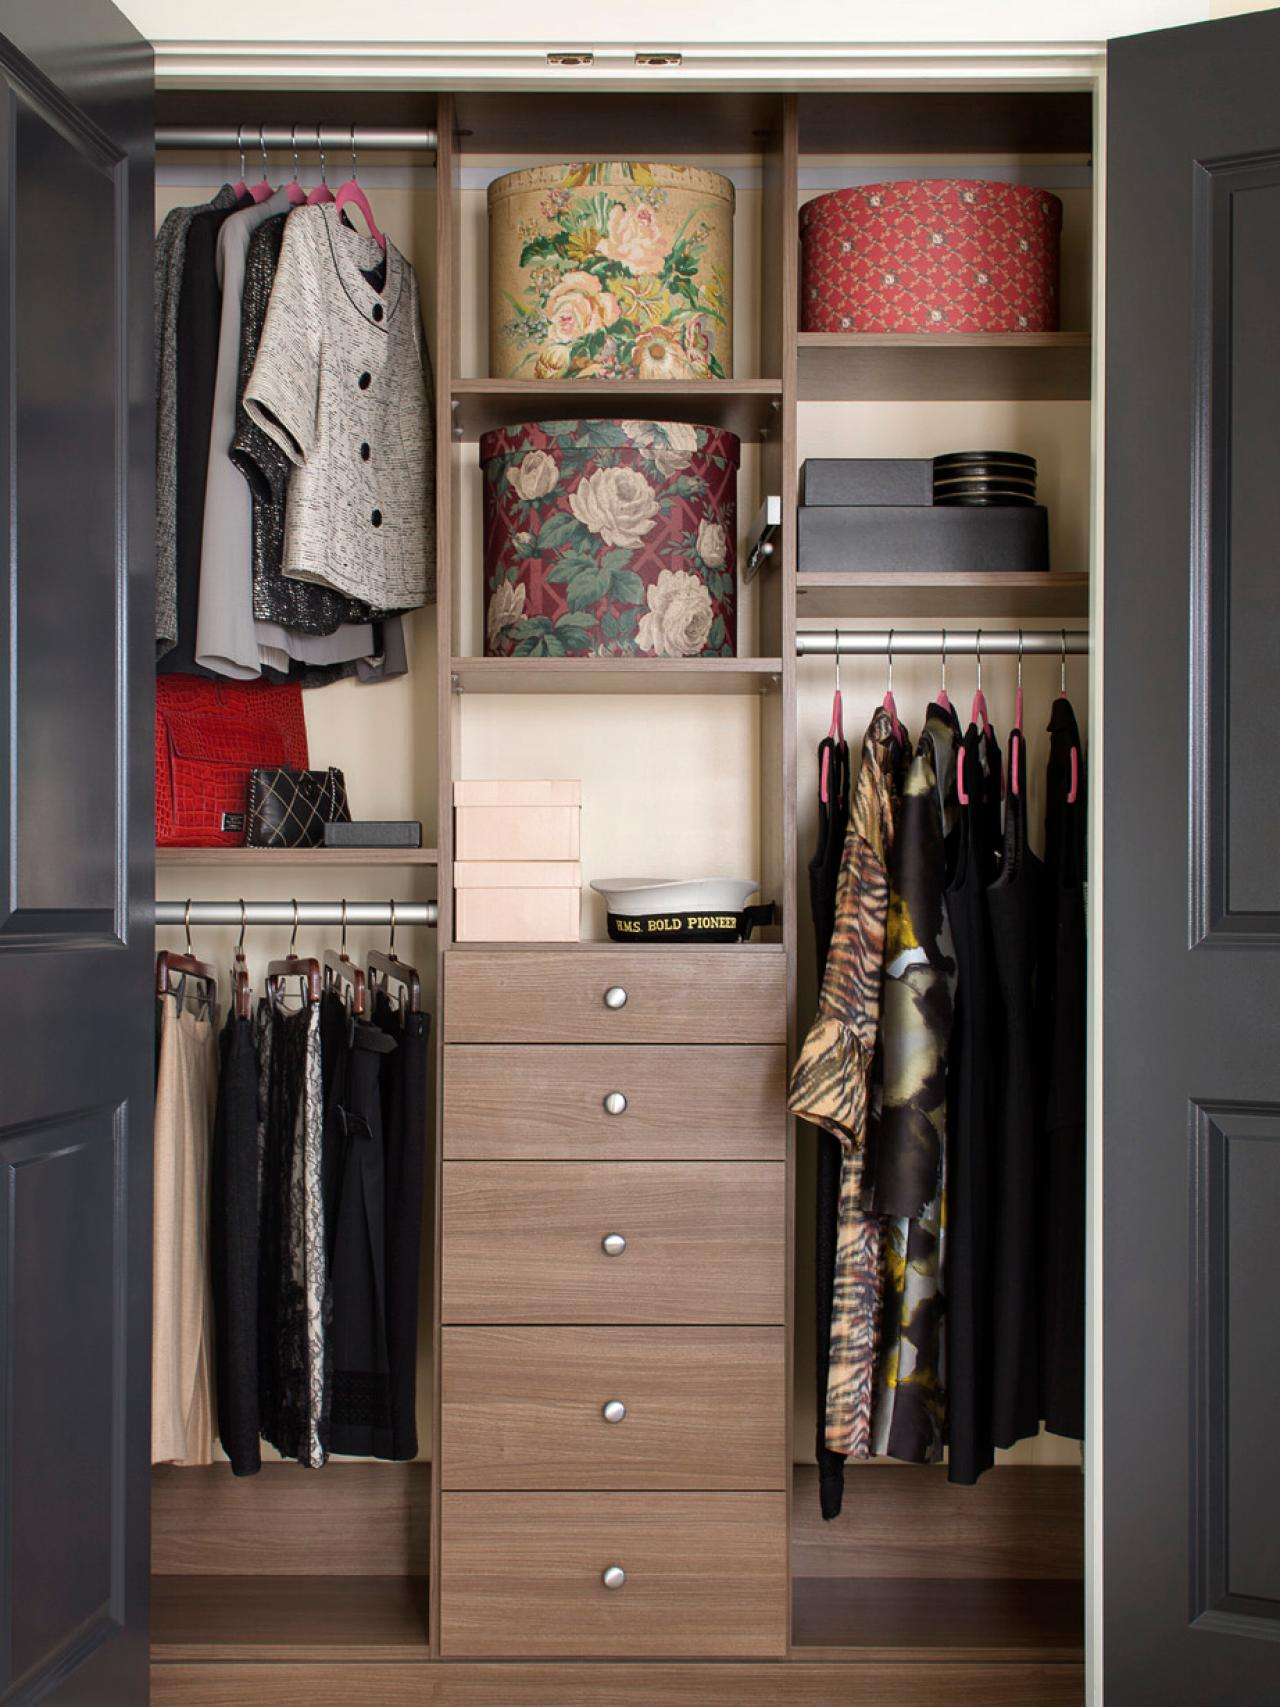 Sort and Sell Your Clothing. Organized Bedroom Closet ...